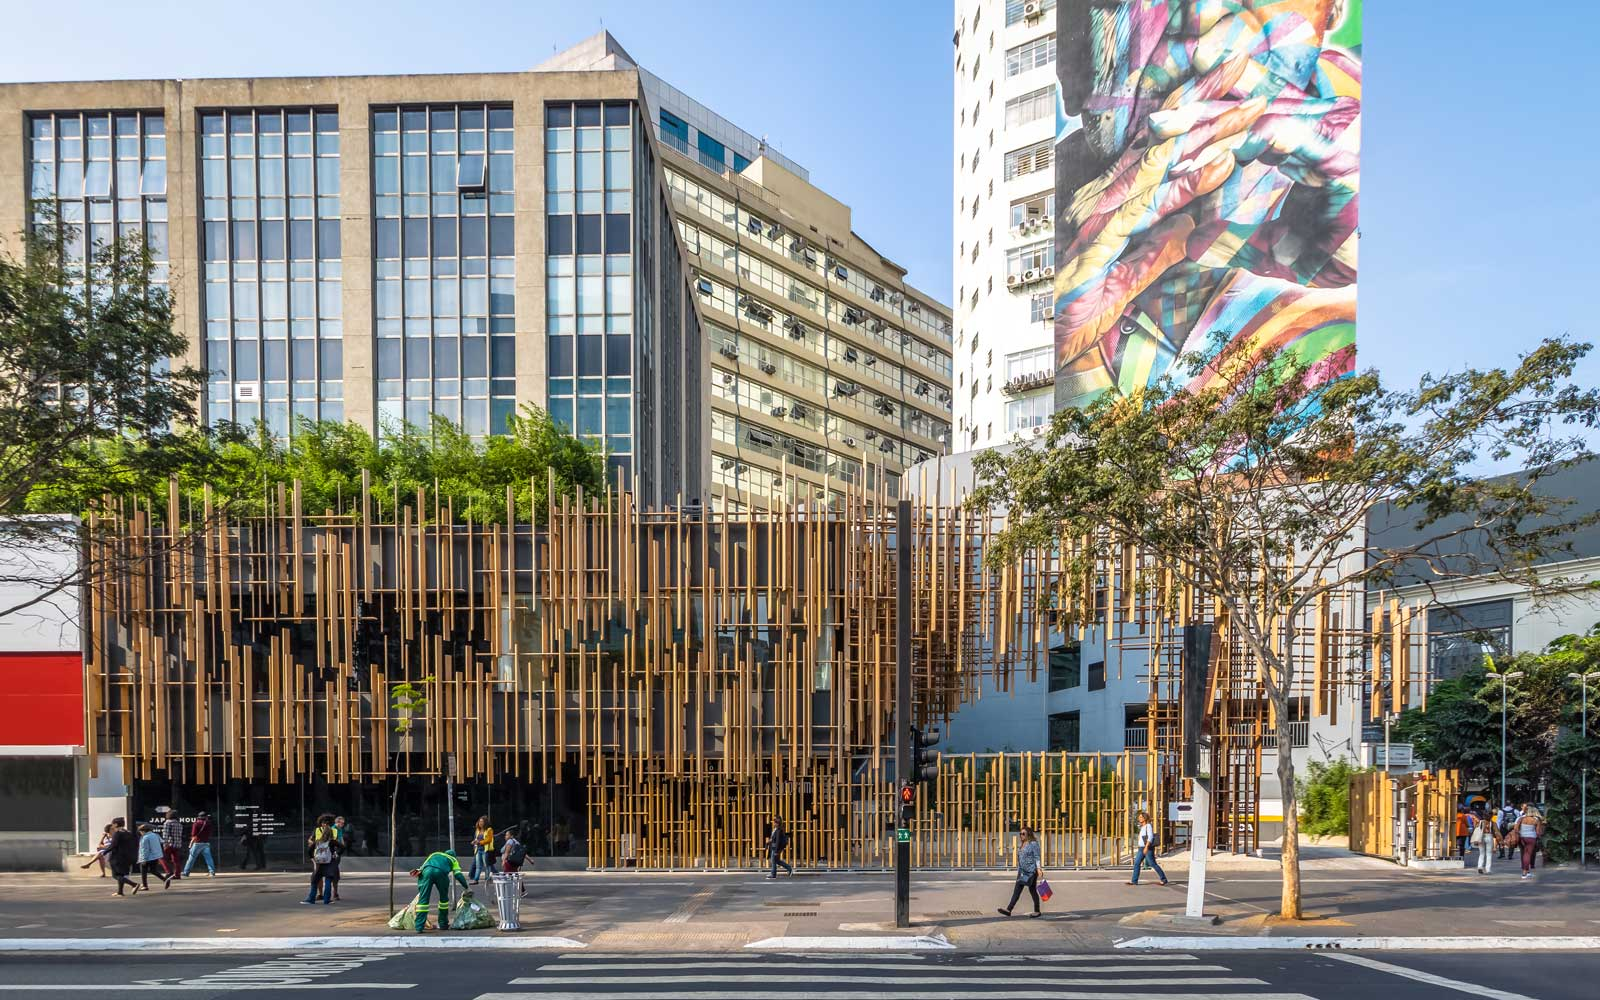 Avenida Paulista, São Paulo's Main Financial Street, Is Becoming a Hub for Art